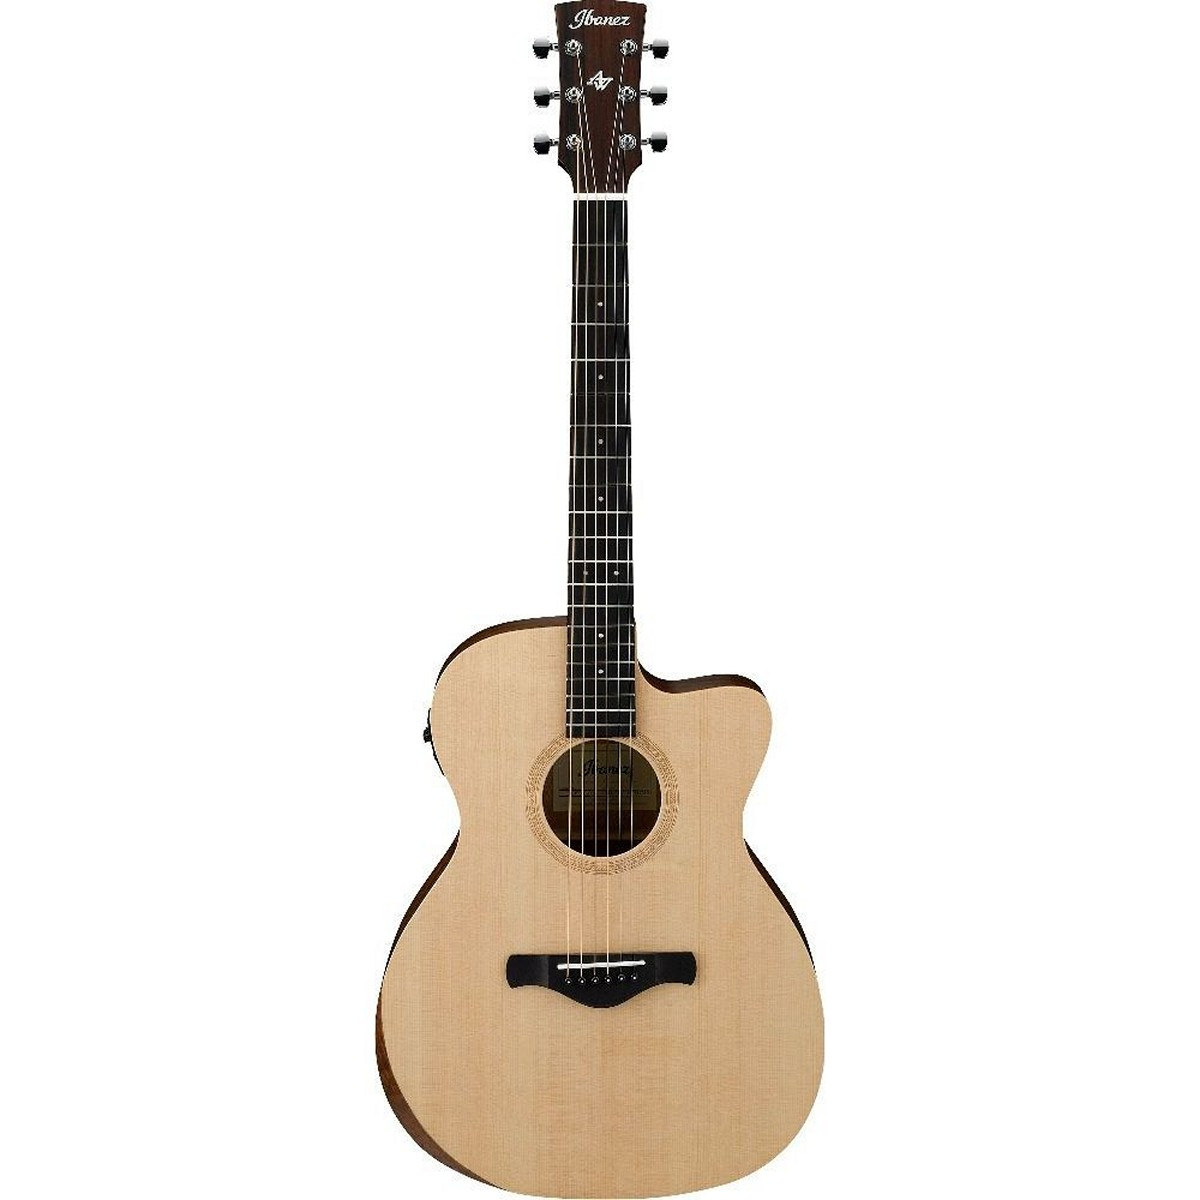 IBANEZ AC150CE-OPN OPEN PORE NATURAL